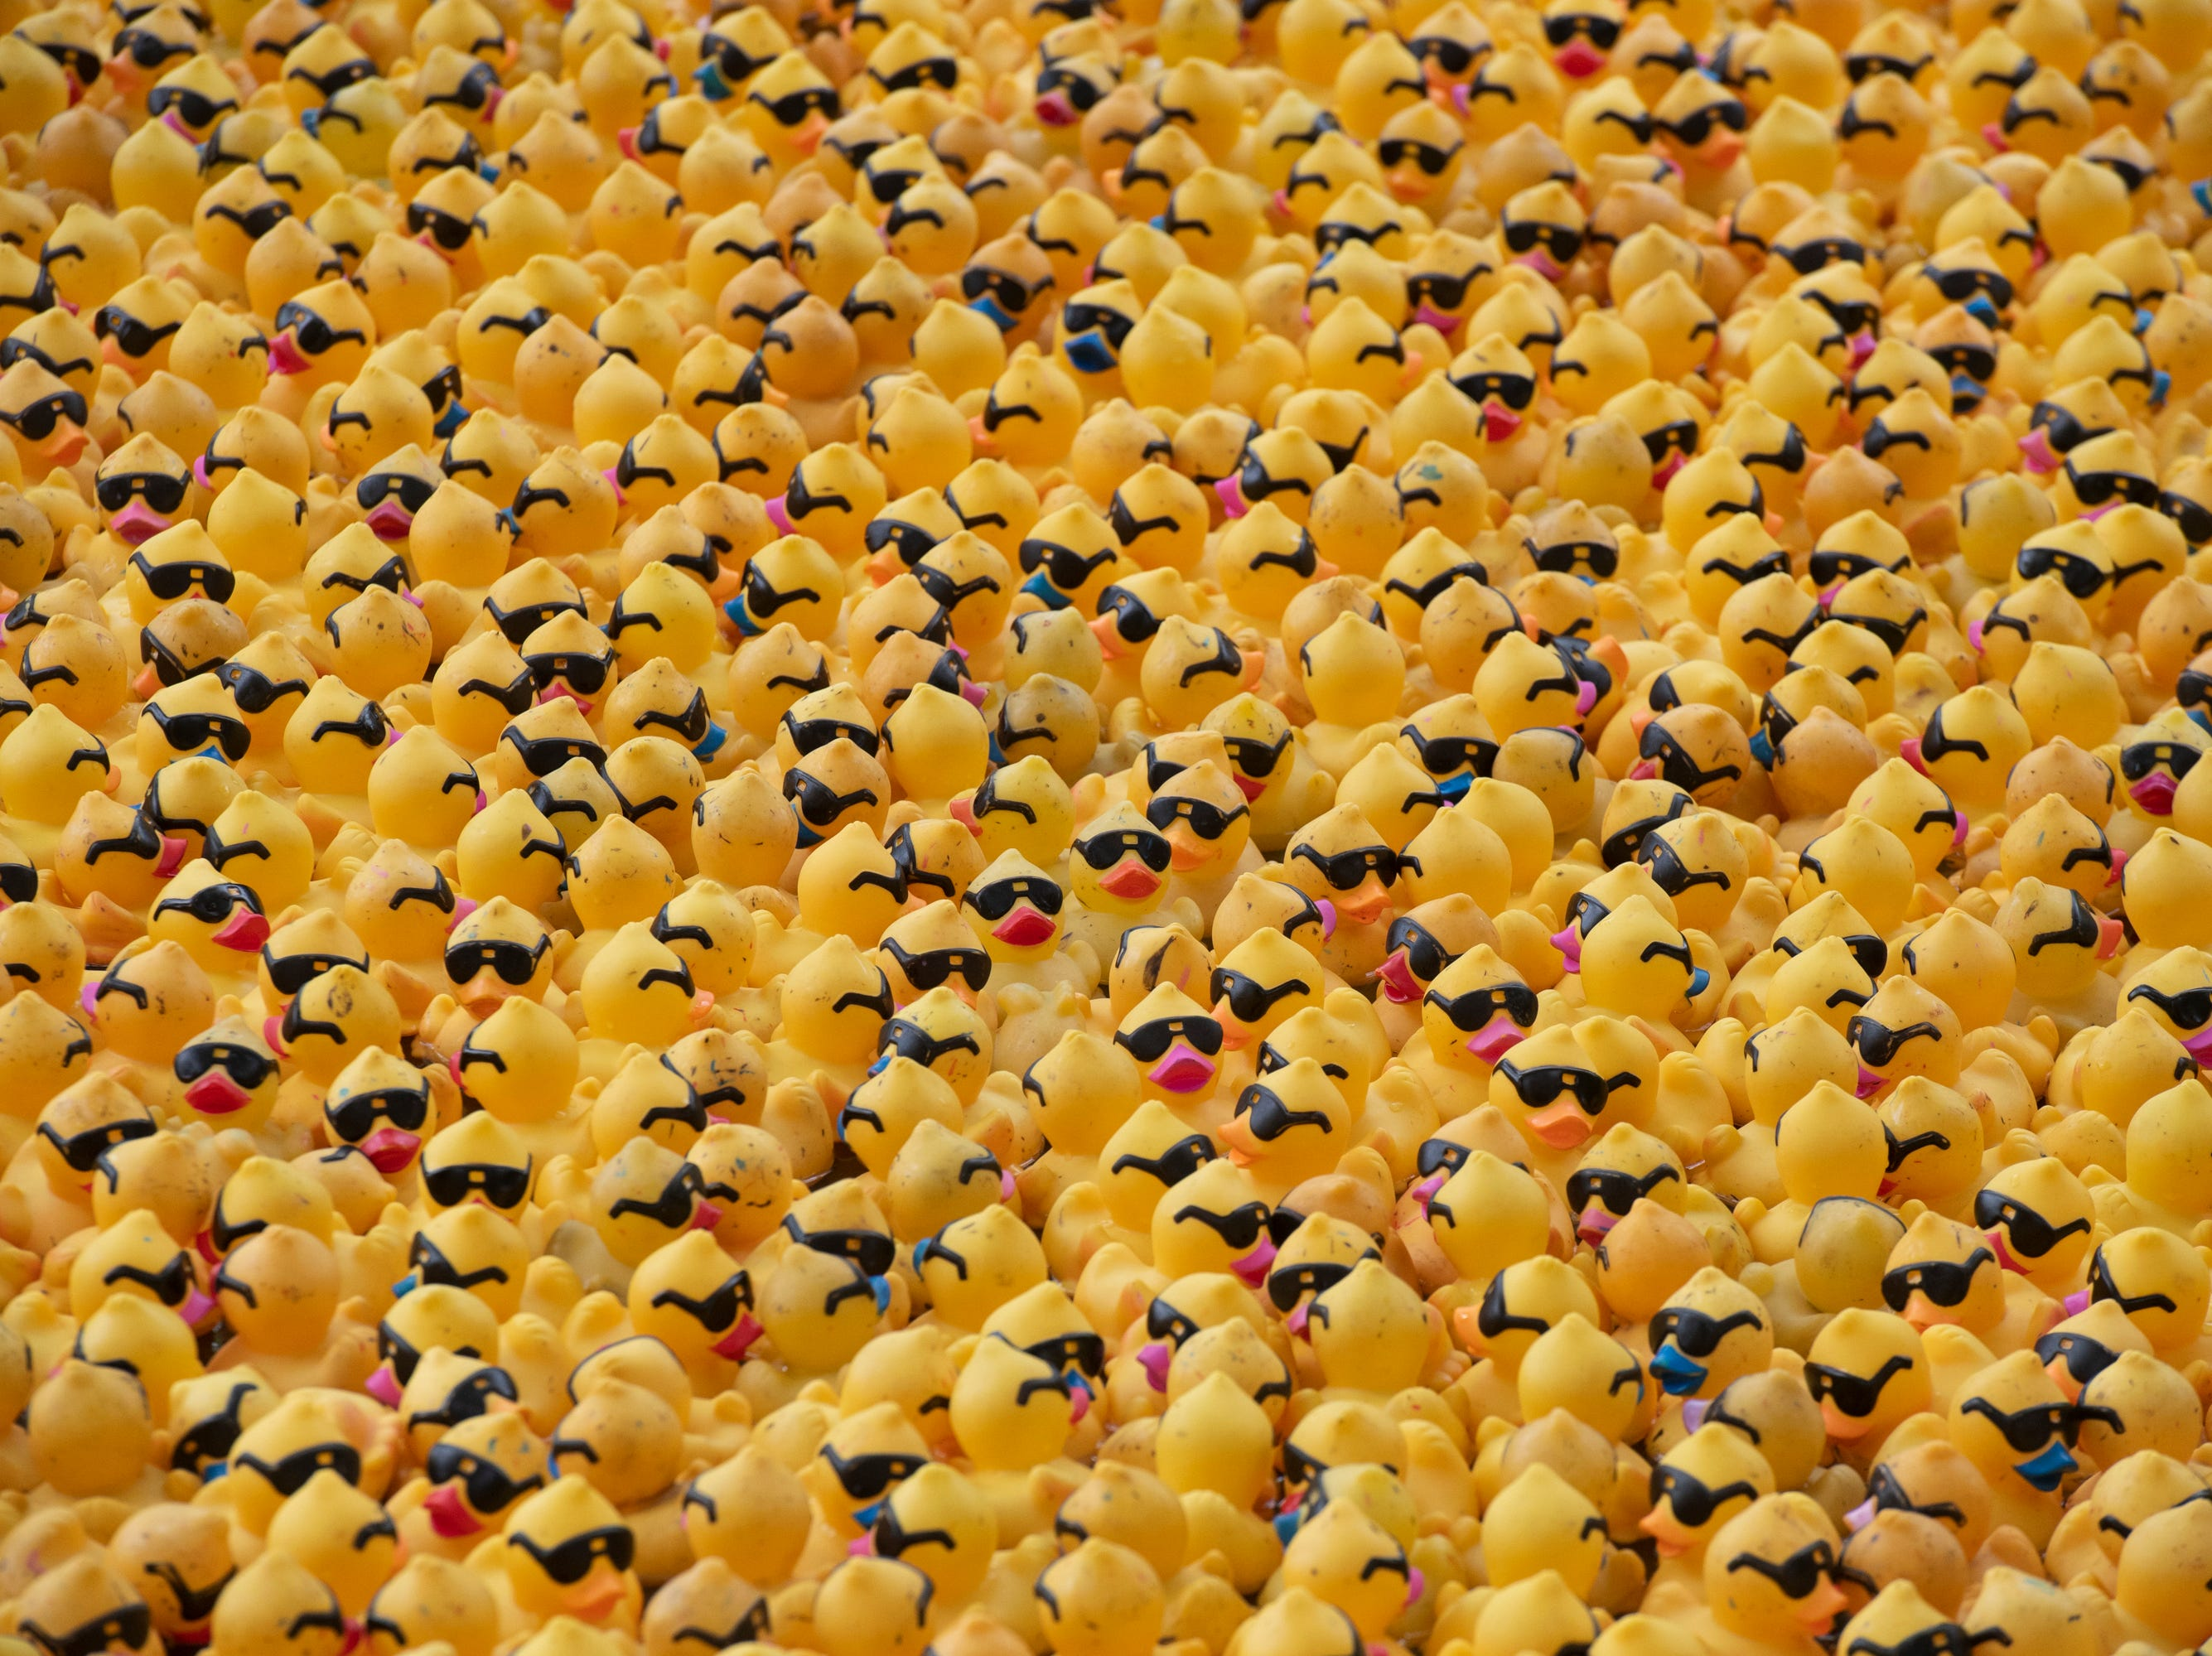 Ducks for the 2019 Reedy River Duck Derby are corralled before the start of the race in Falls Park on the Reedy Saturday, May 4, 2019.